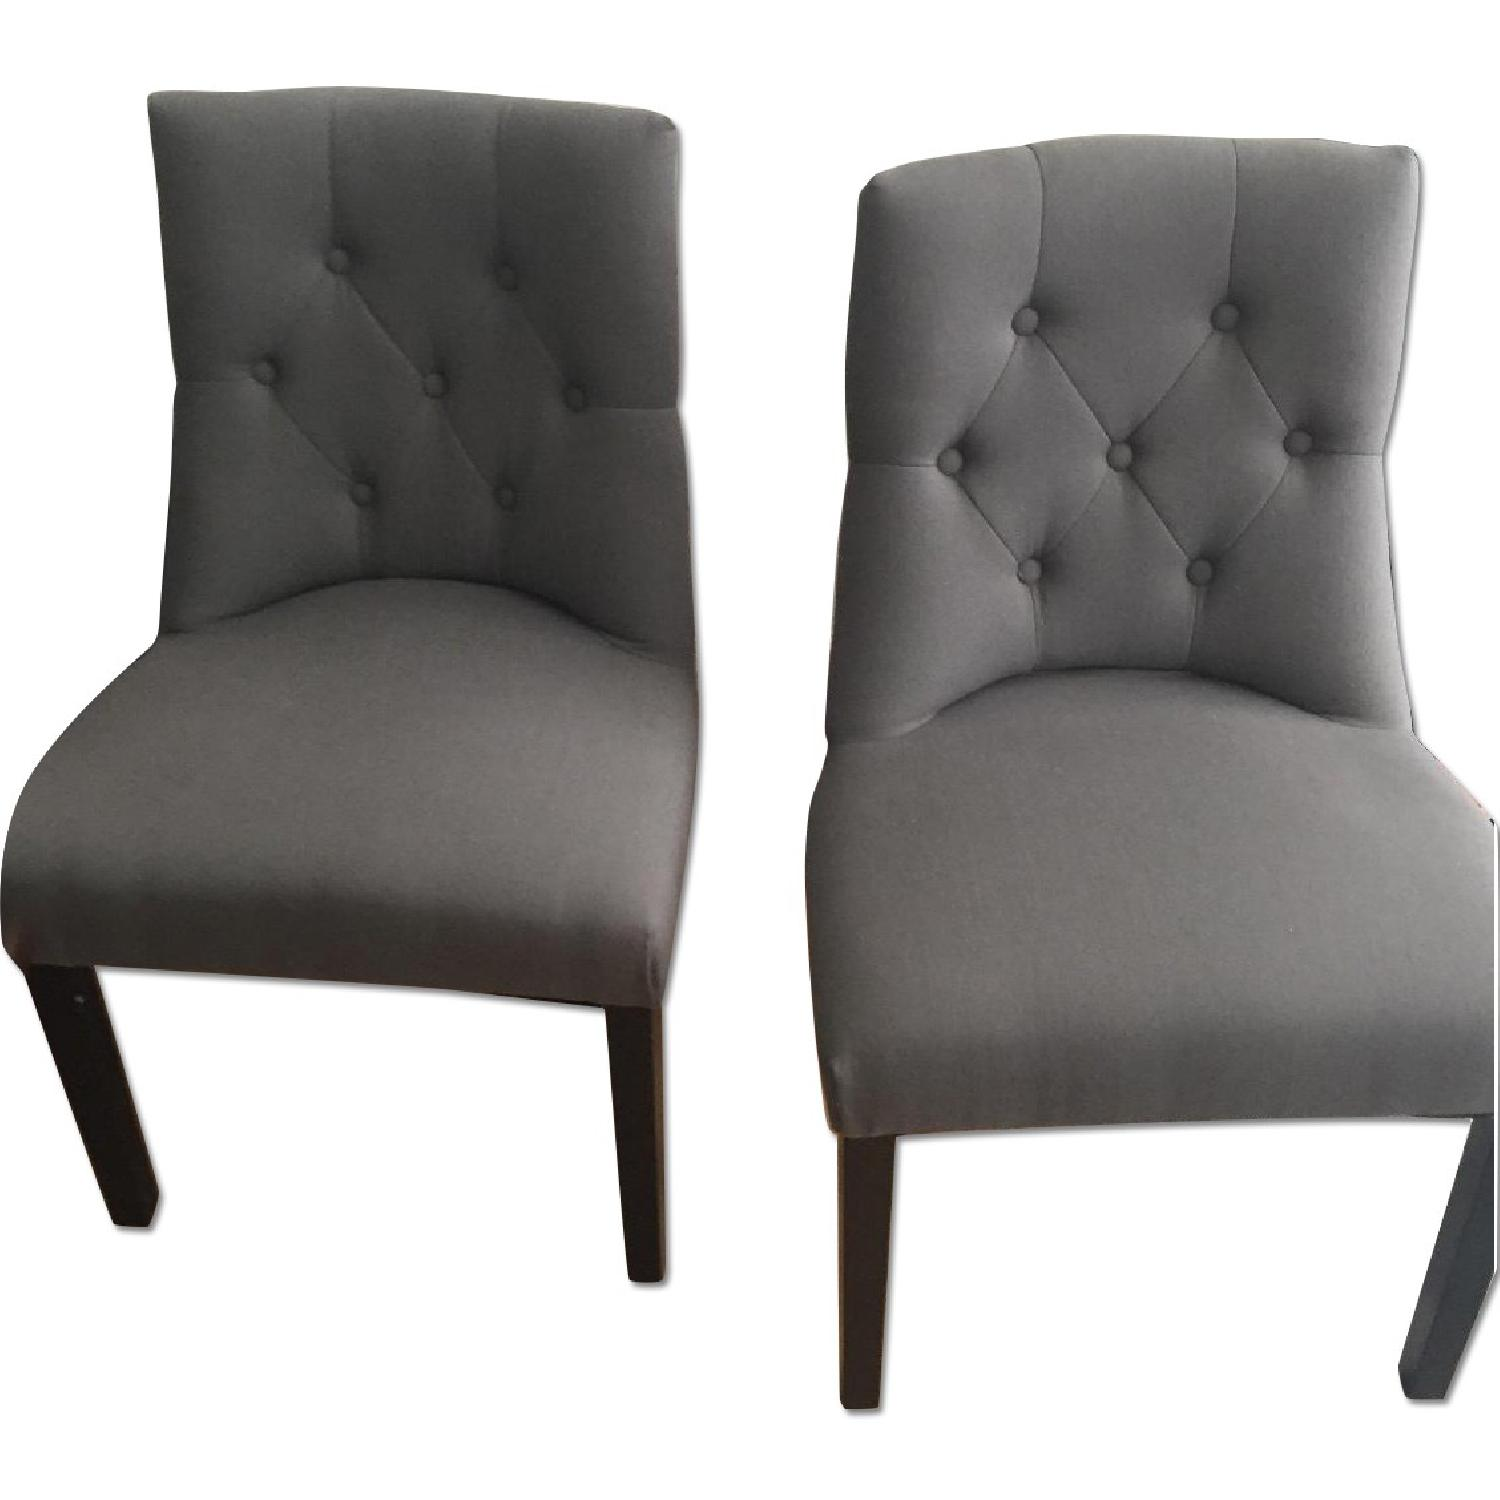 Bellcrest Button Tufted Upholstered Dining Chairs Aptdeco